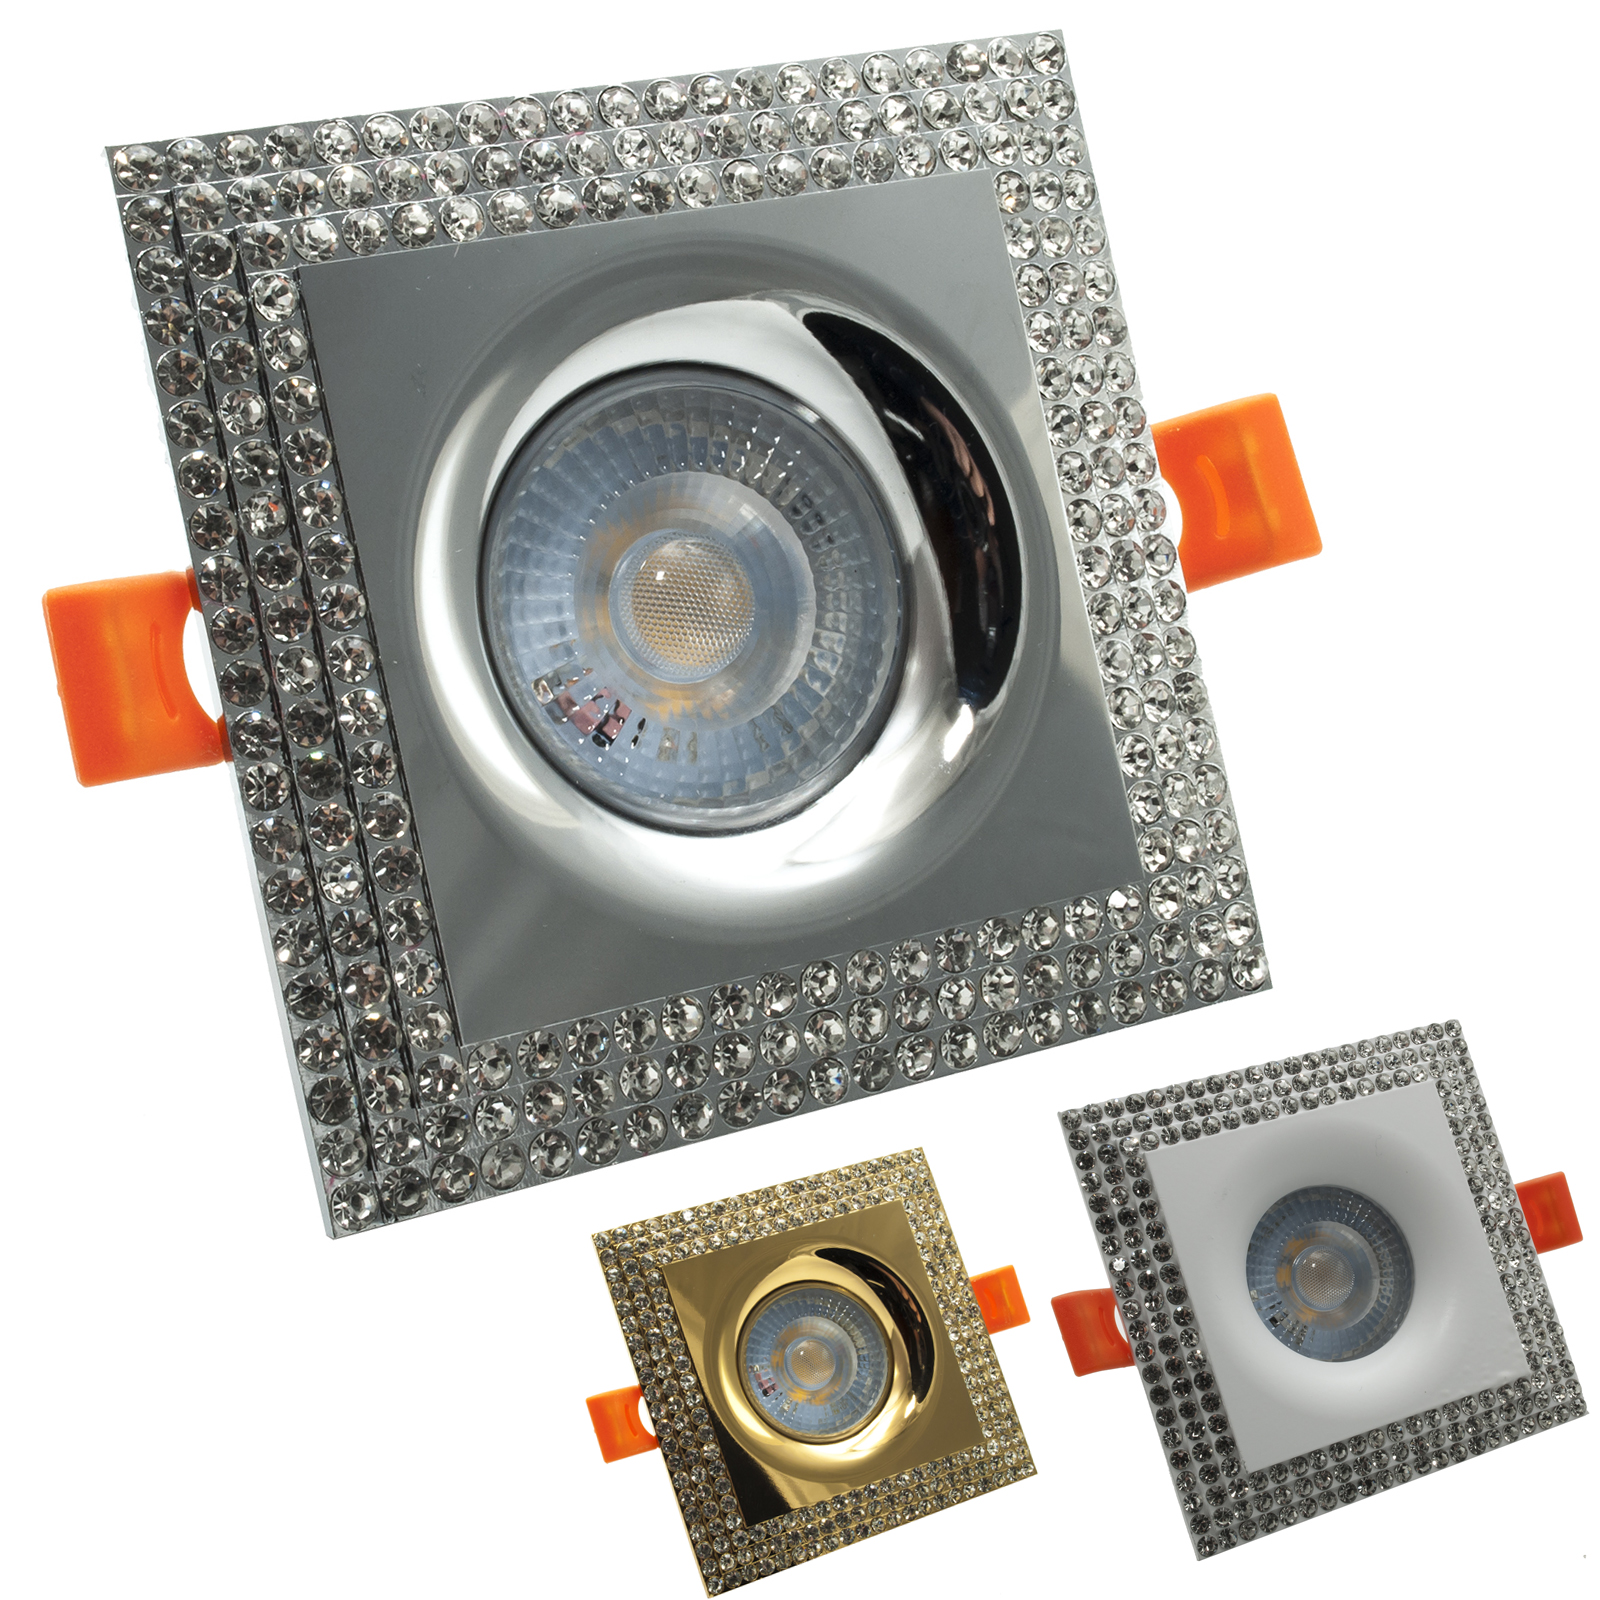 LED spotlight 5W recessed square frame glitter spot light 38 degree hole 65mm